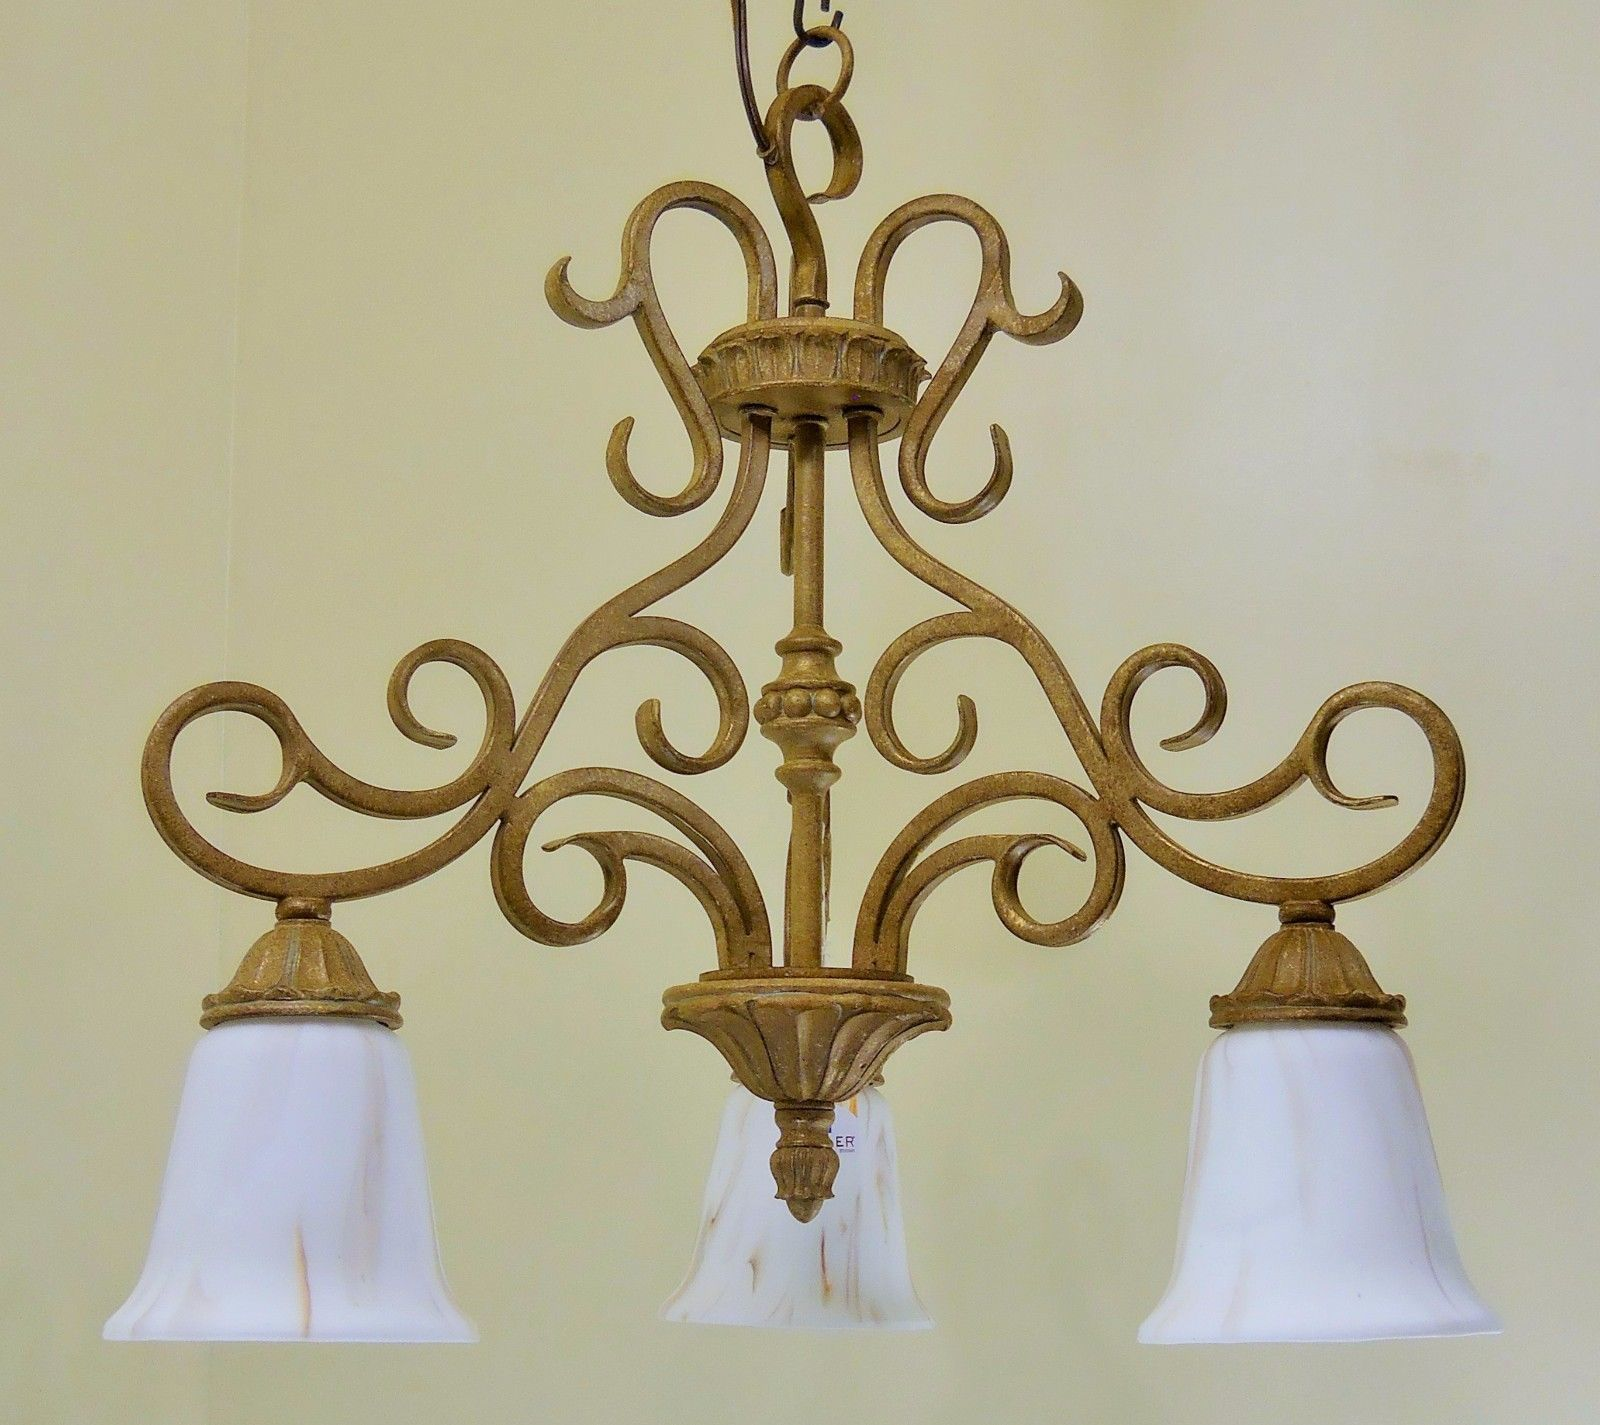 Regal Gold Finish Scrolled Metal Pendant Chandelier Light French Swirl Glass